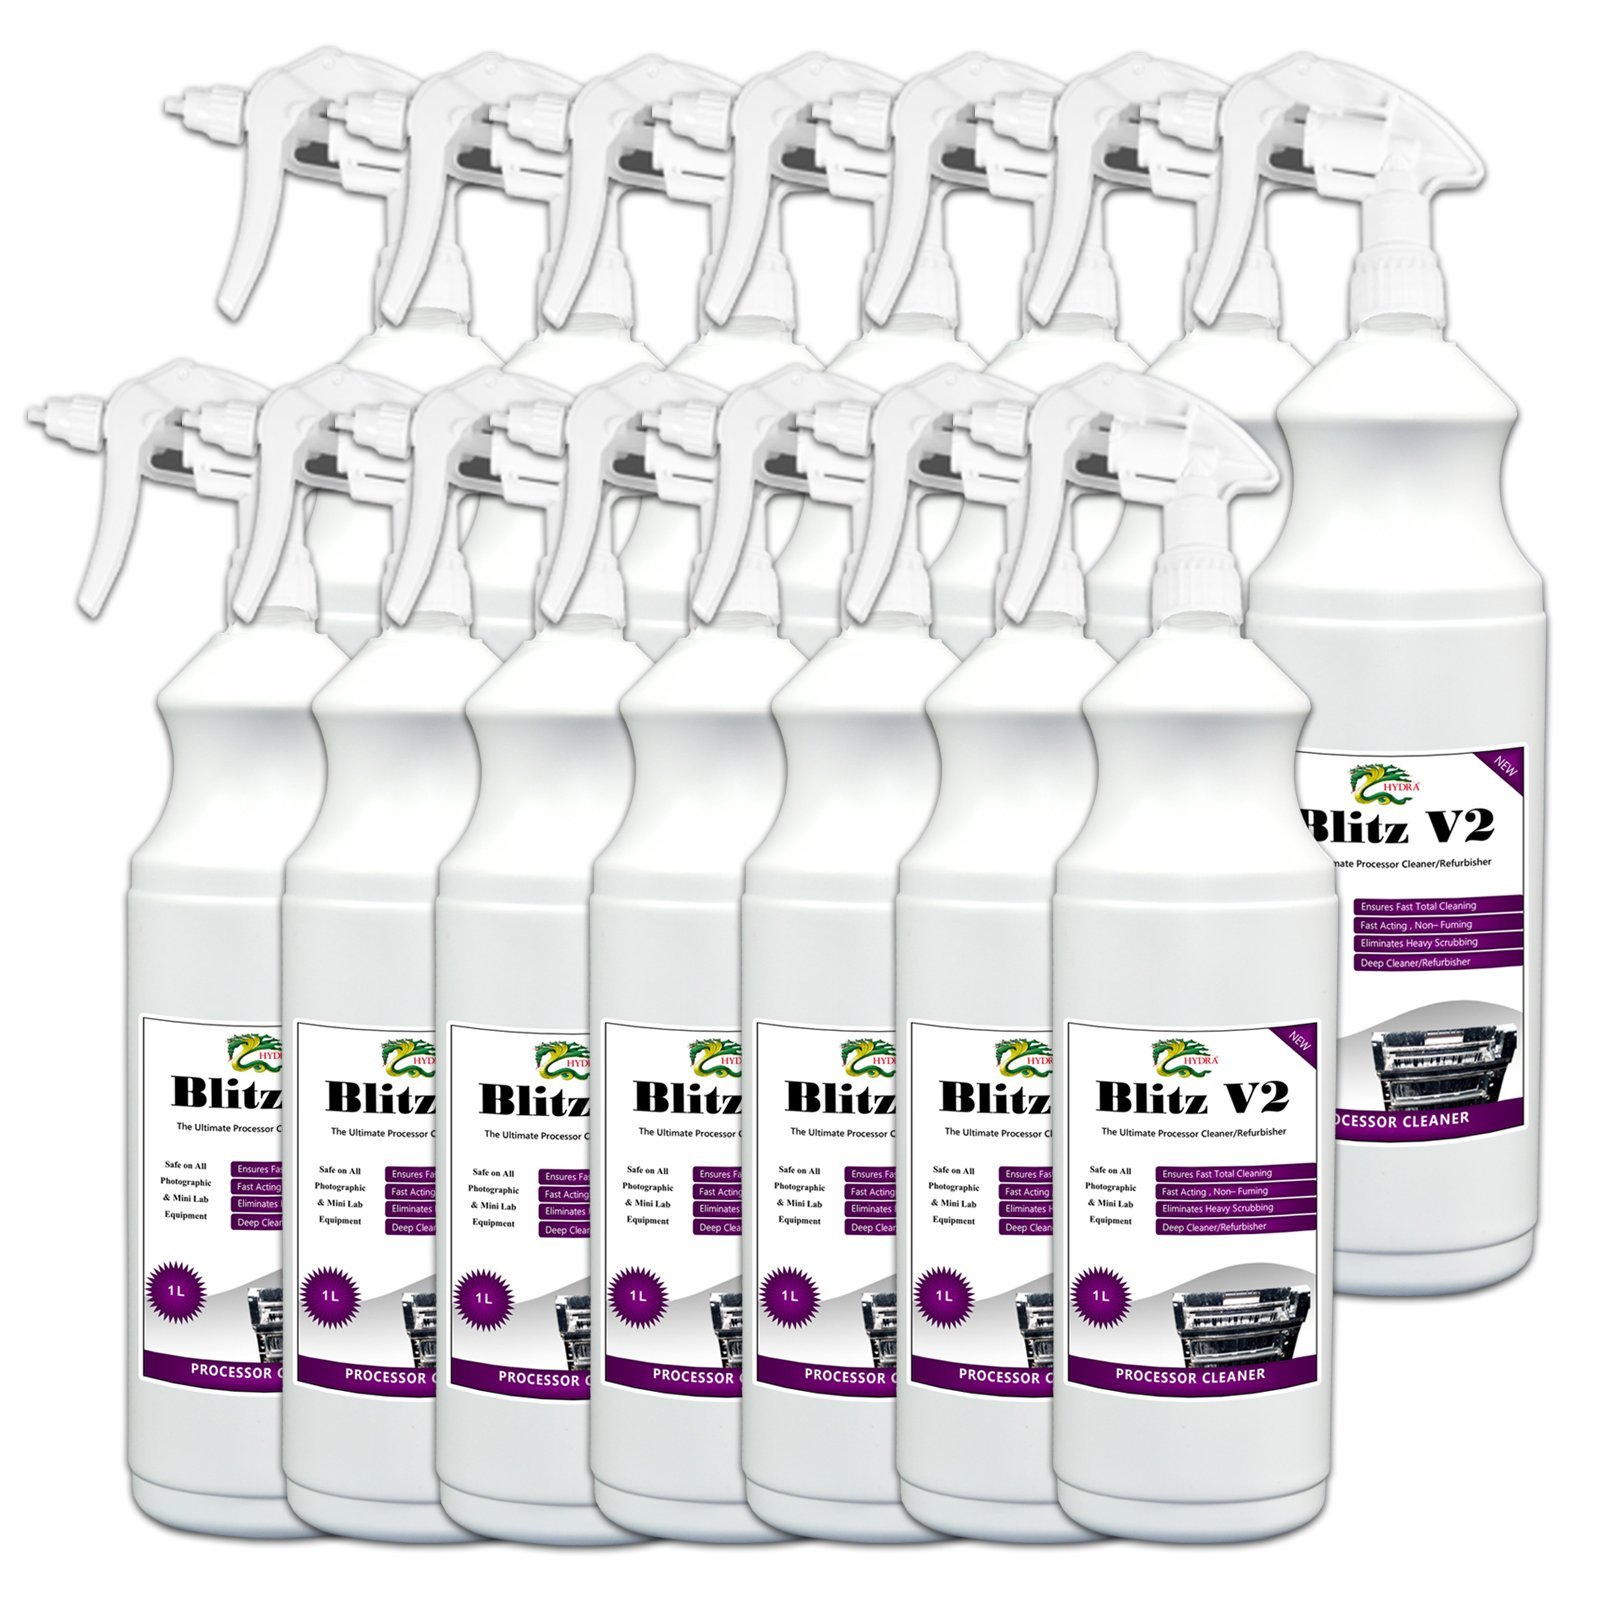 Deep Cleaner and Descaler HYDRA BLITZ V2 - 14x1L Foaming Spot Cleaner For Badly Scaled Racks, Conventional Film, Plate and Paper Processors